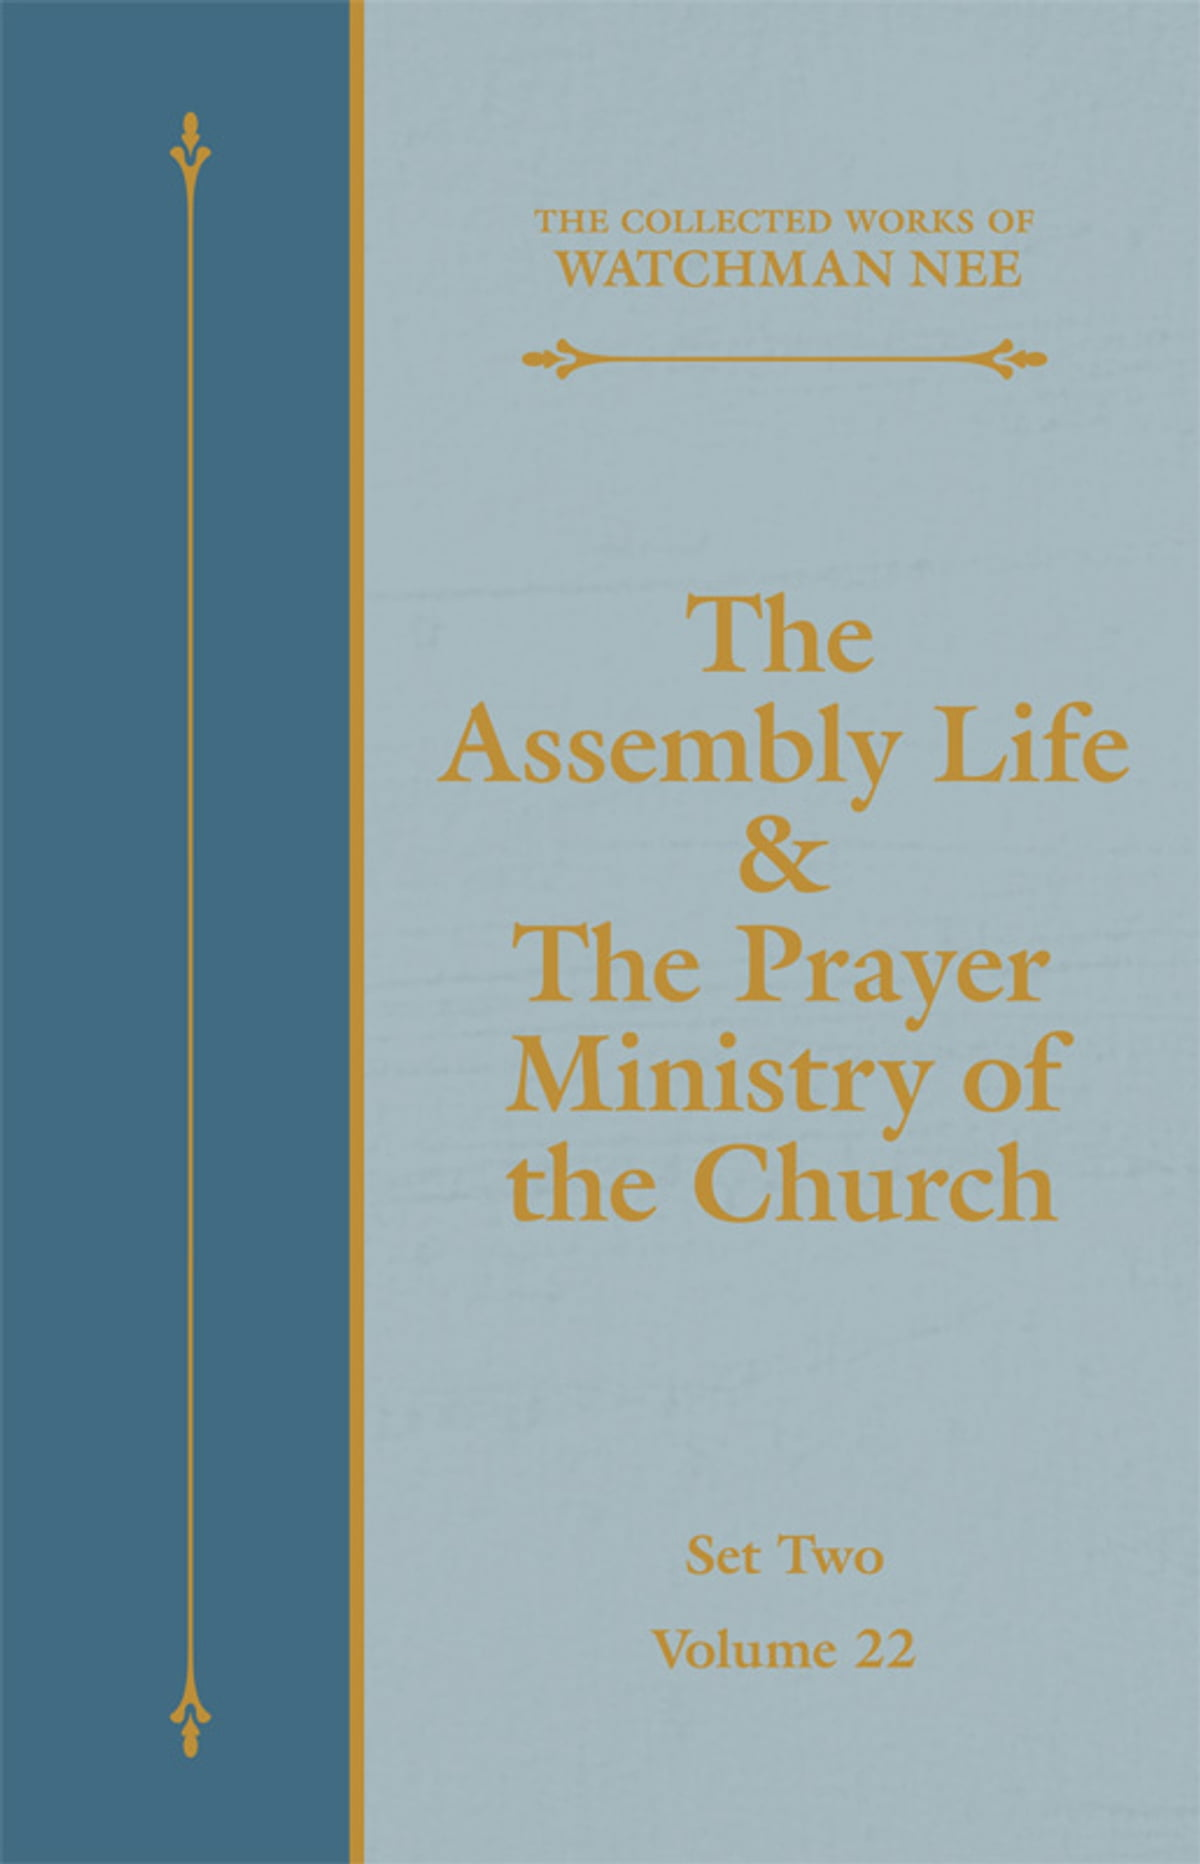 Prayer Ministry The Assembly Life The Prayer Ministry Of The Church Ebook By Watchman Nee Rakuten Kobo